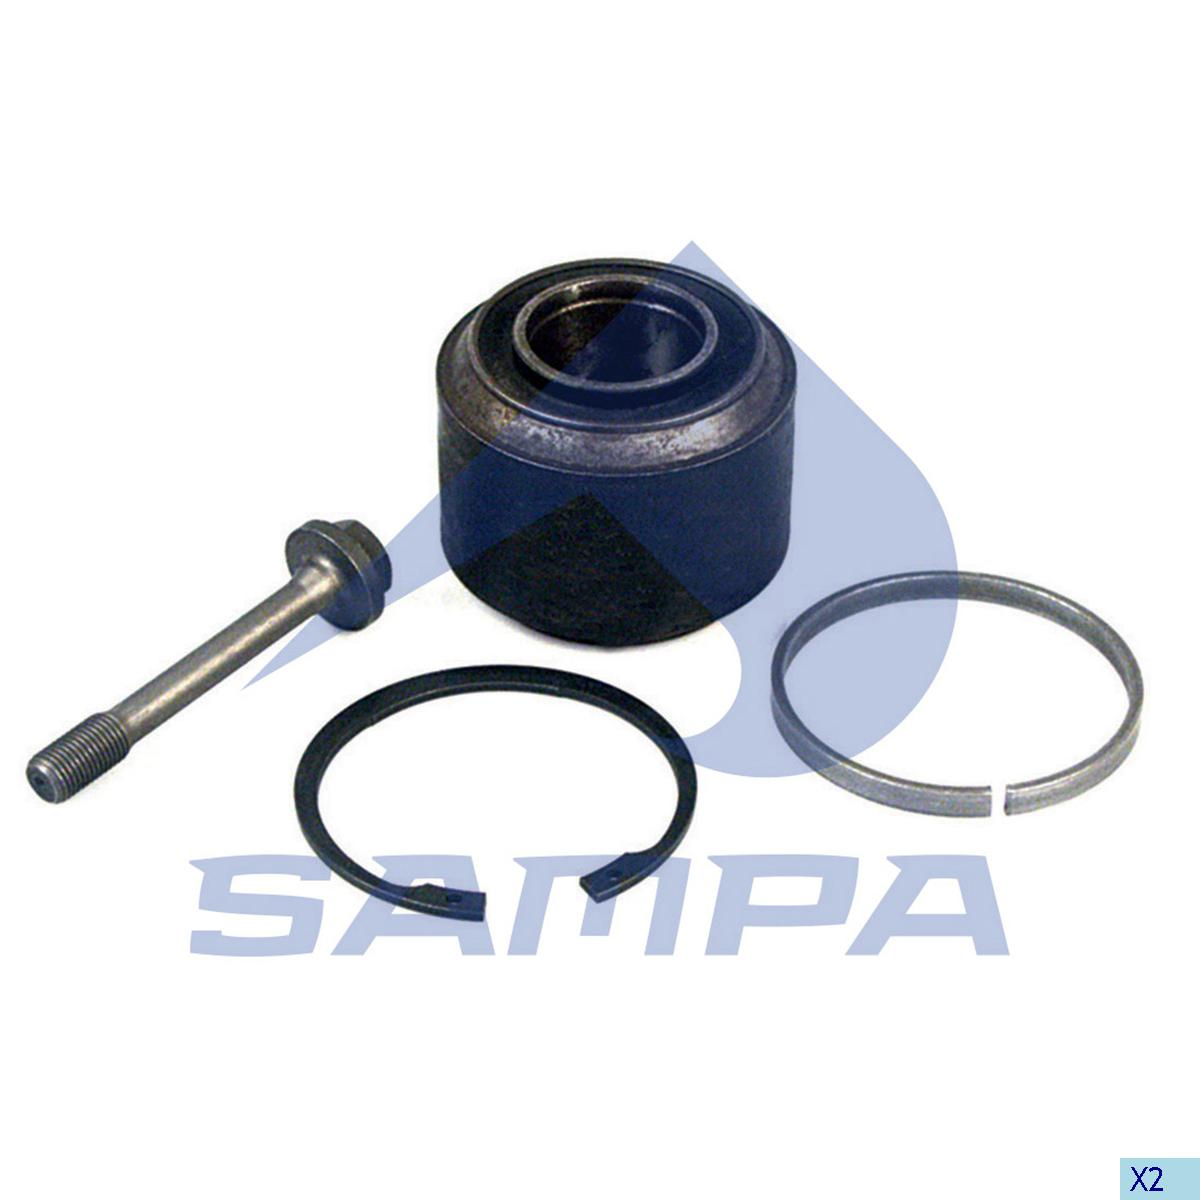 Repair Kit, Axle Rod, Iveco, Suspension